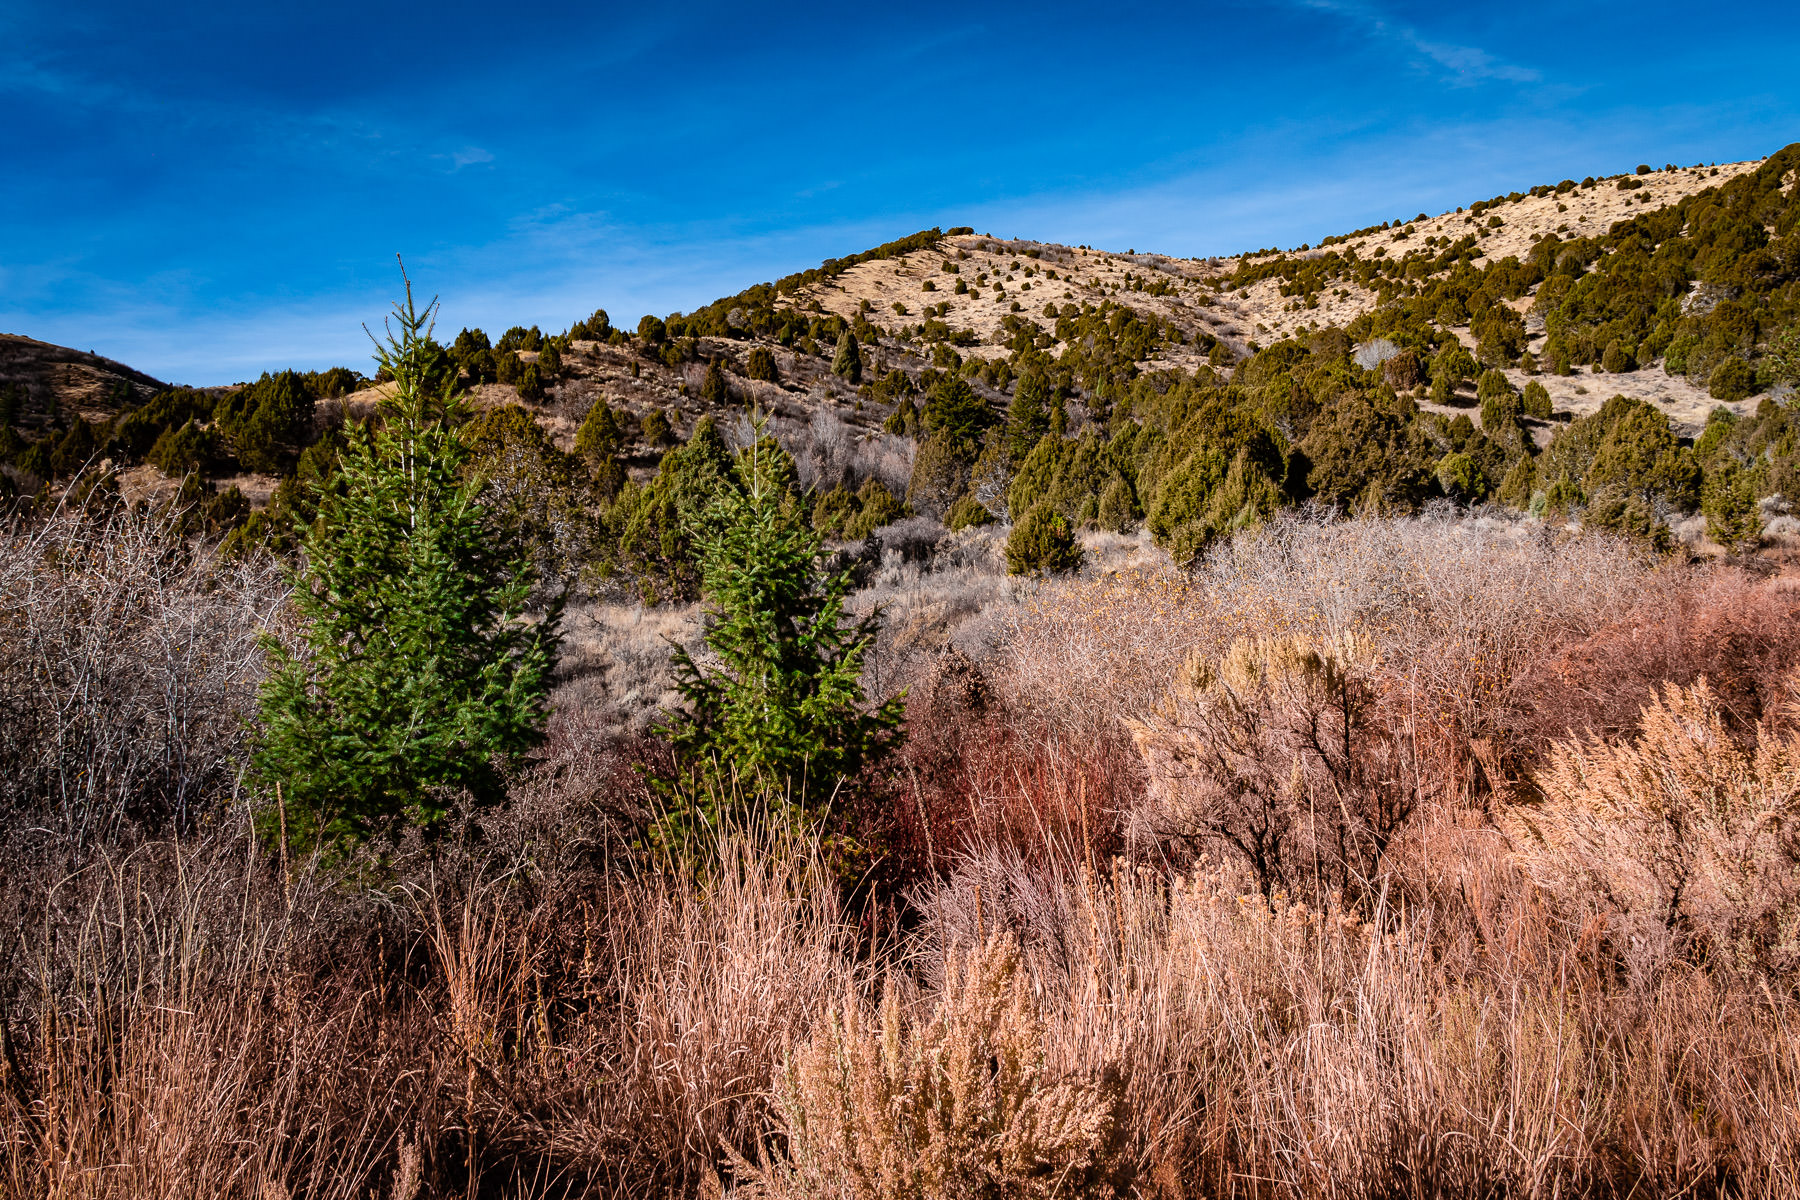 The hilly landscape of Cherry Springs Nature Area near Pocatello, Idaho.